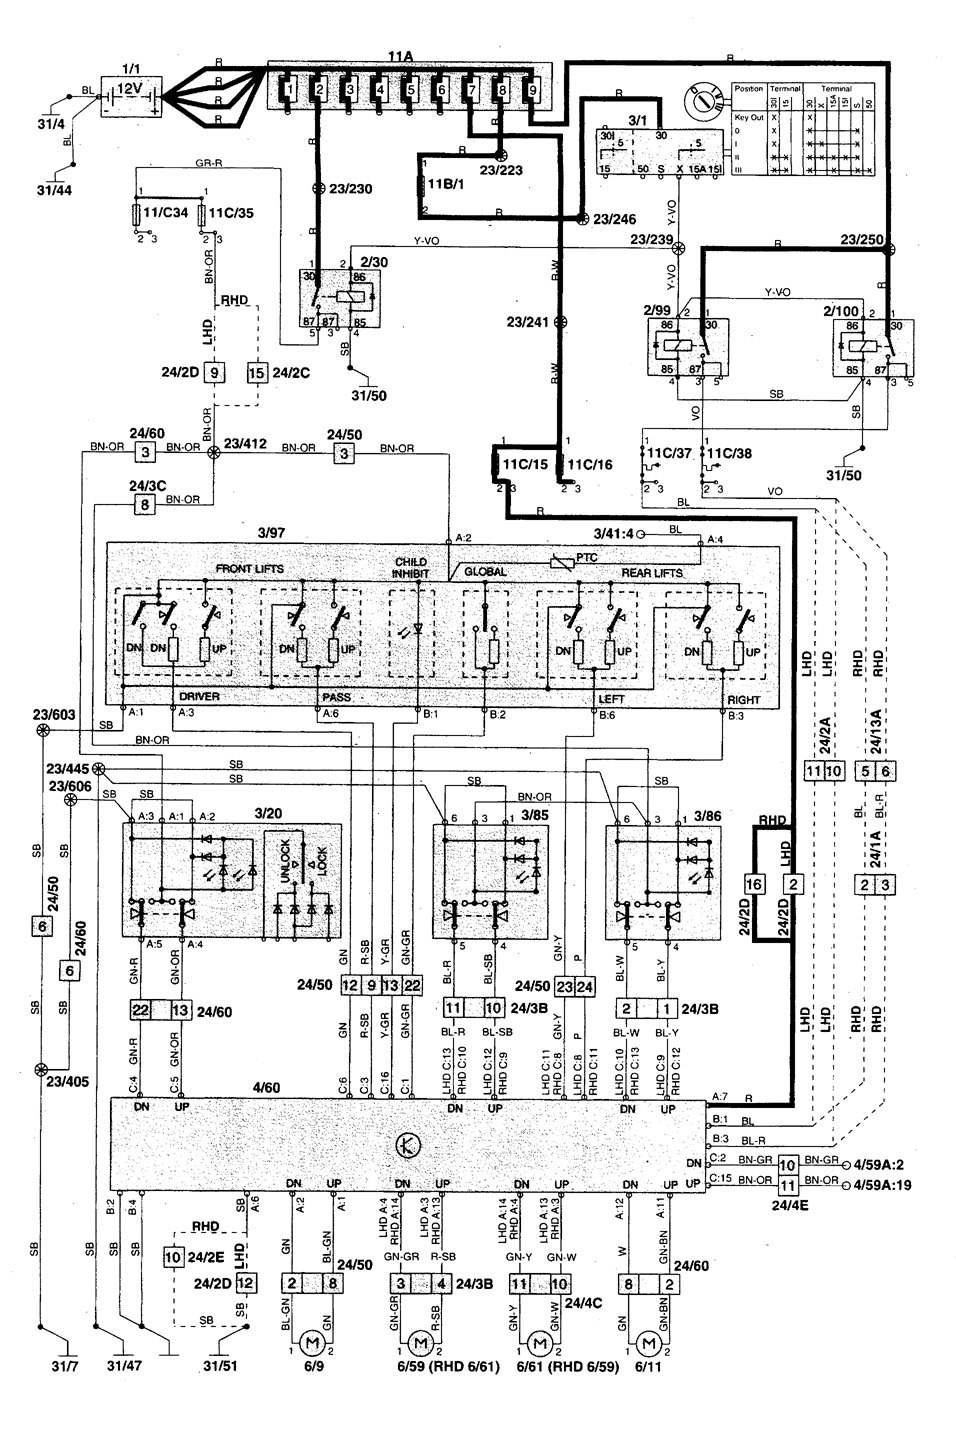 Volvo S70  1998 - 2000  - Wiring Diagrams - Power Windows